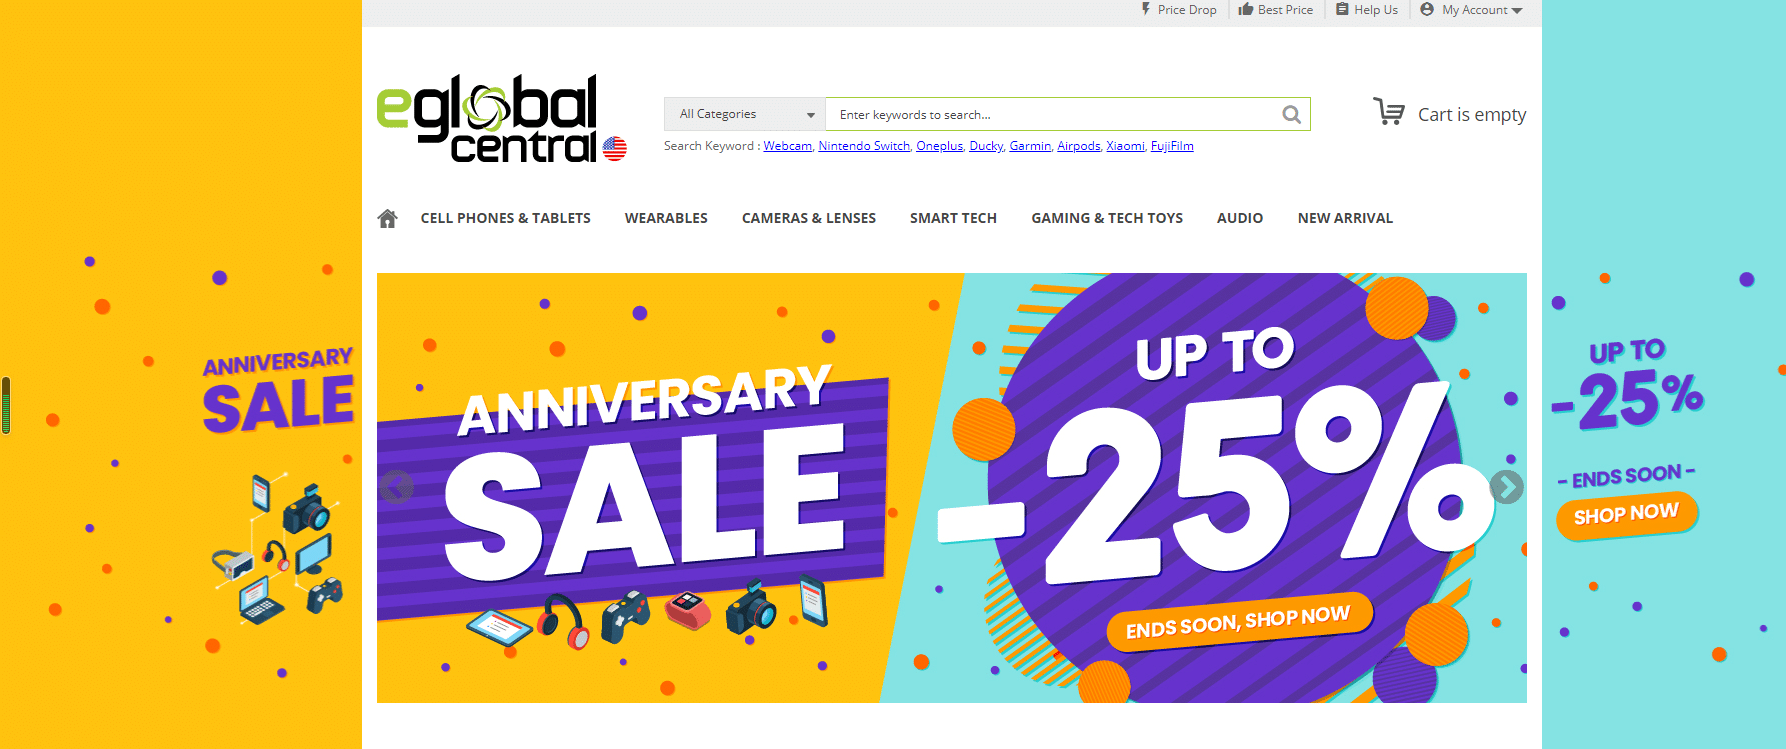 eGlobal Central Anniversary Sale